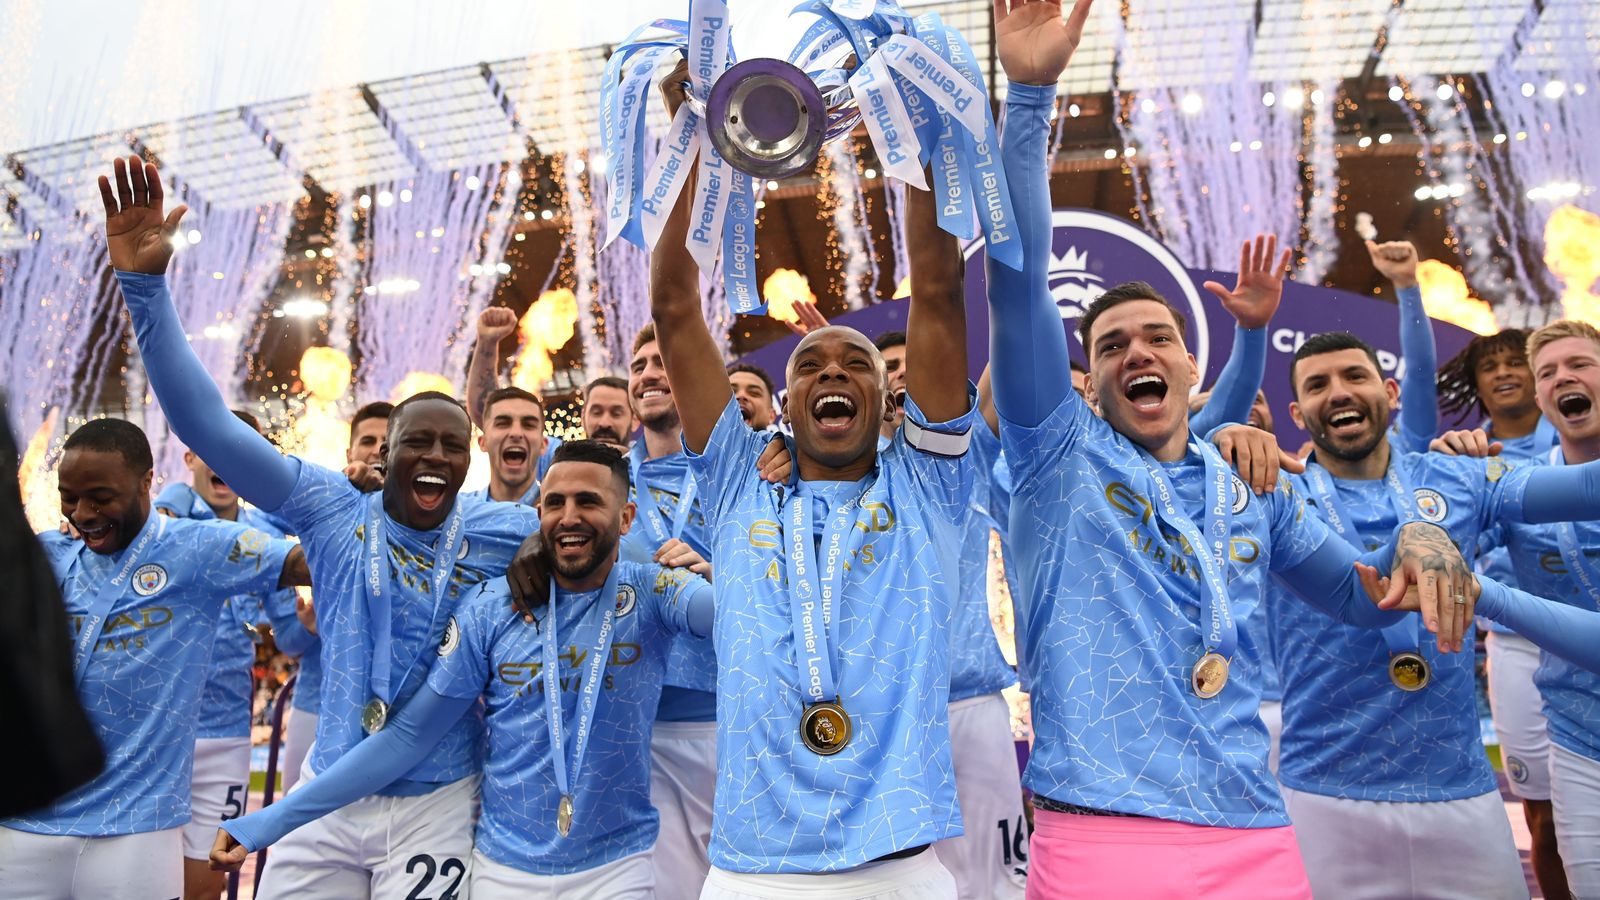 """""""The 2020/21 Premier League season was unpredictable and competitive as the COVID-19 pandemic posed considerable challenges. Despite everything, all our clubs produced an entertaining and action-packed campaign."""""""